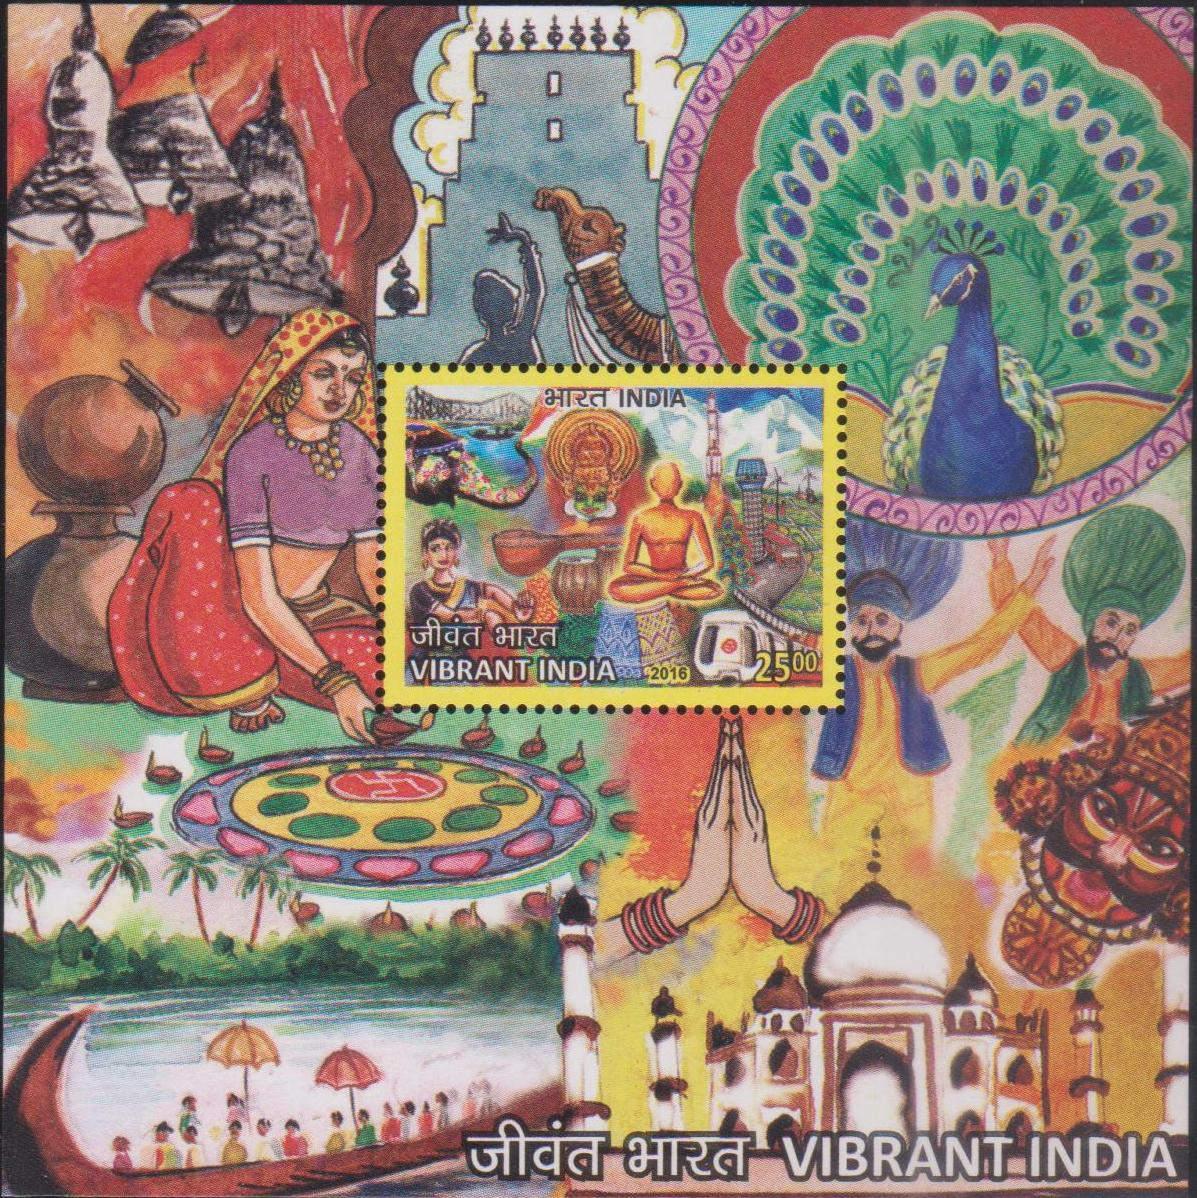 Indian Cultures and Traditions : वाइब्रेंट इंडिया